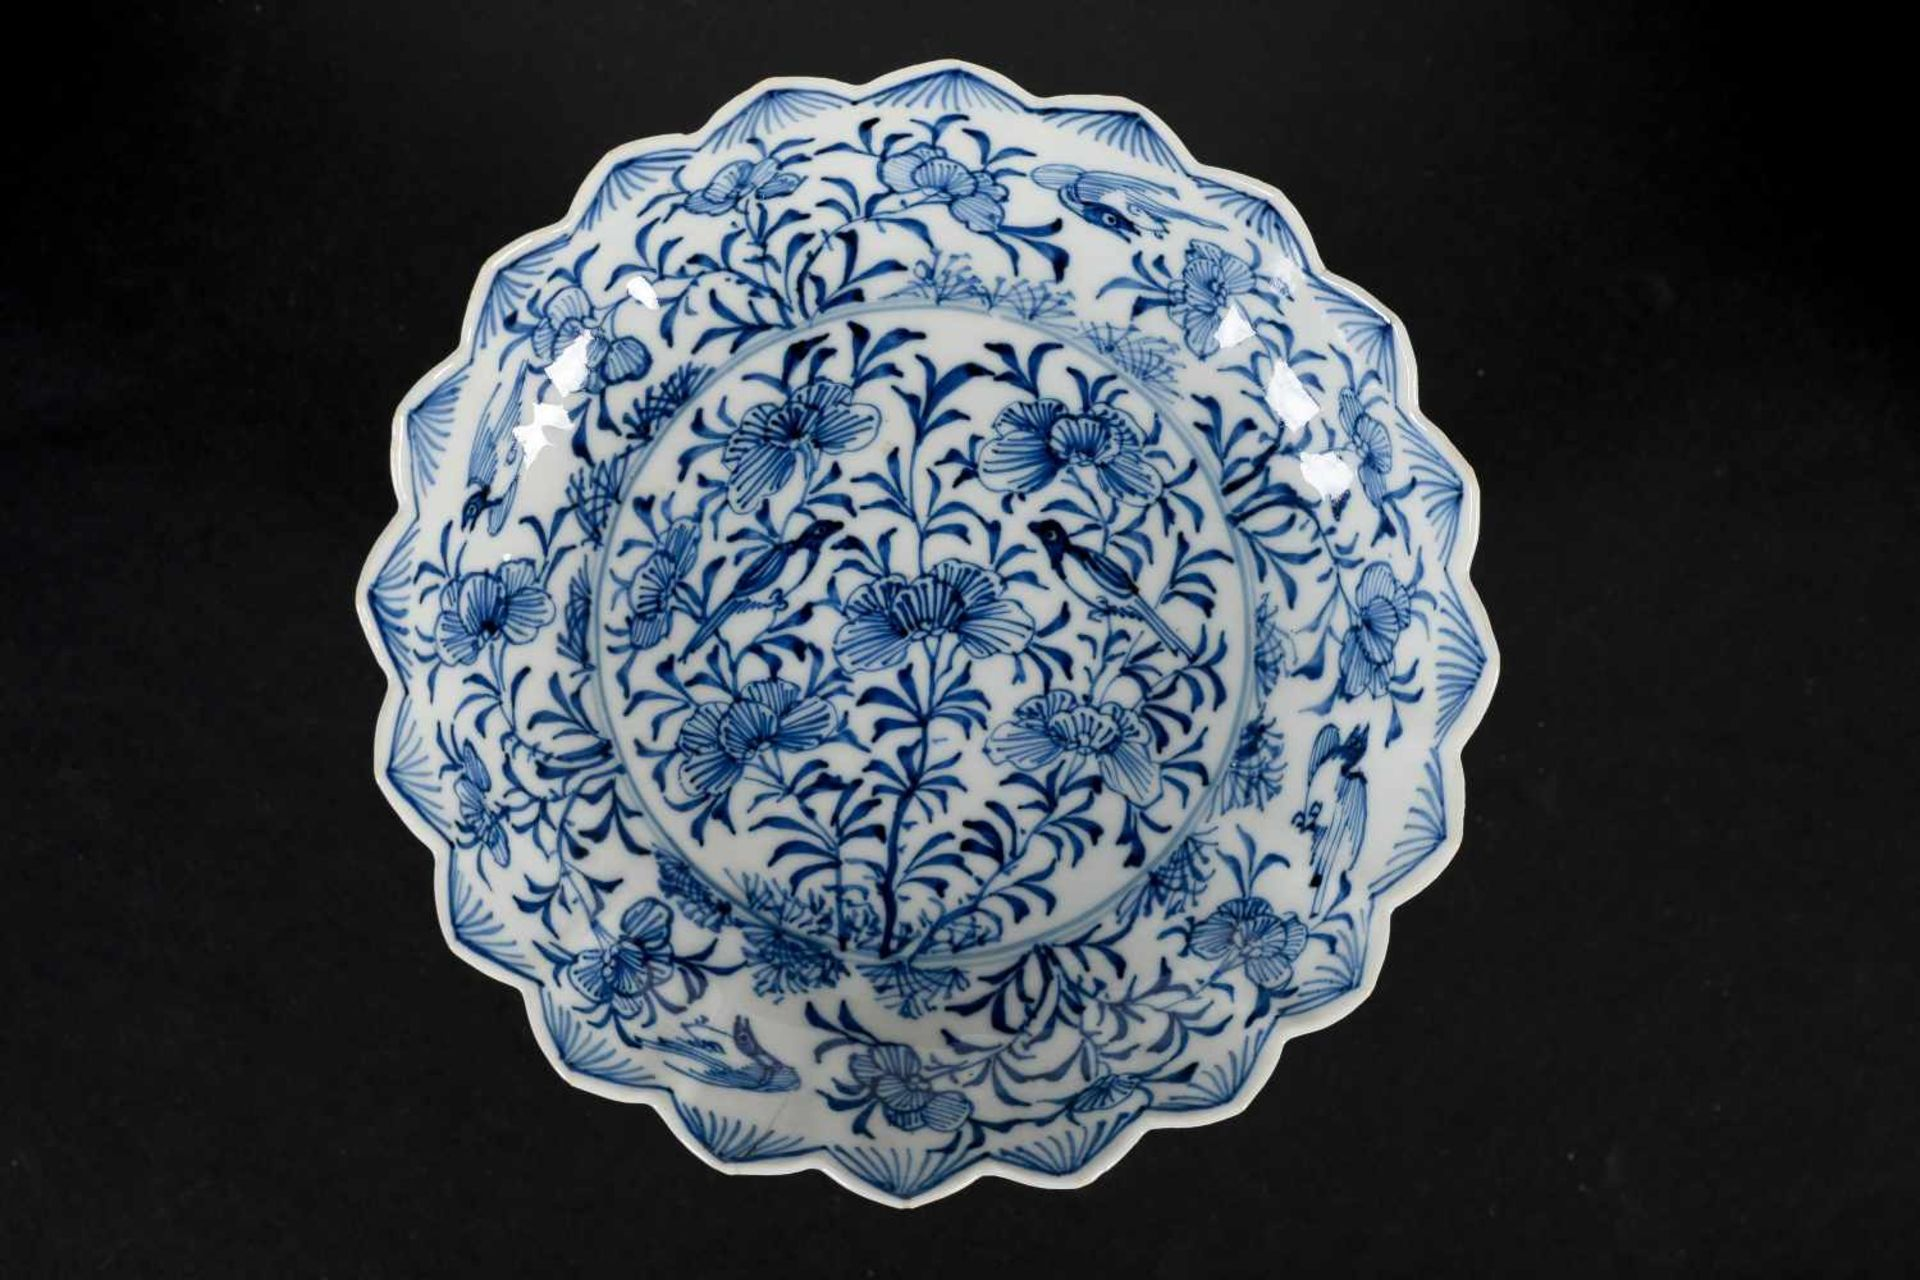 A set of six blue and white porcelain deep saucers with scalloped rim, decorated with flowers and - Bild 8 aus 8